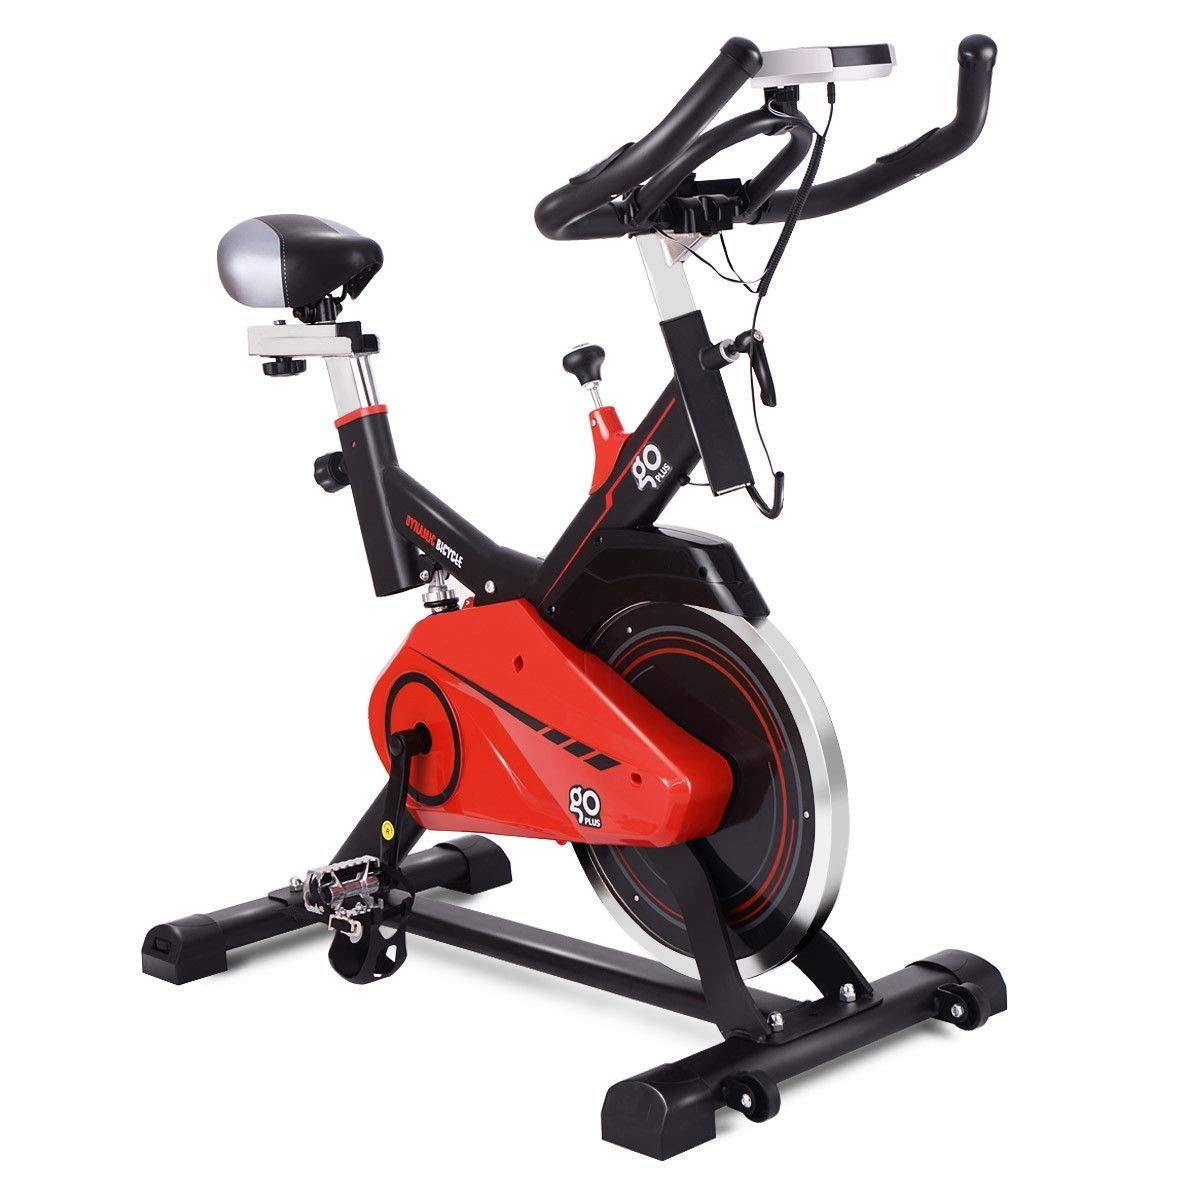 BeUniqueToday Exercise Bike Stationary Bicycle Cardio Equipment, Brand New and Exercise Bike Stationary Bicycle Cardio Equipment, Exercise Bike Stationary Bicycle with Durable Frame